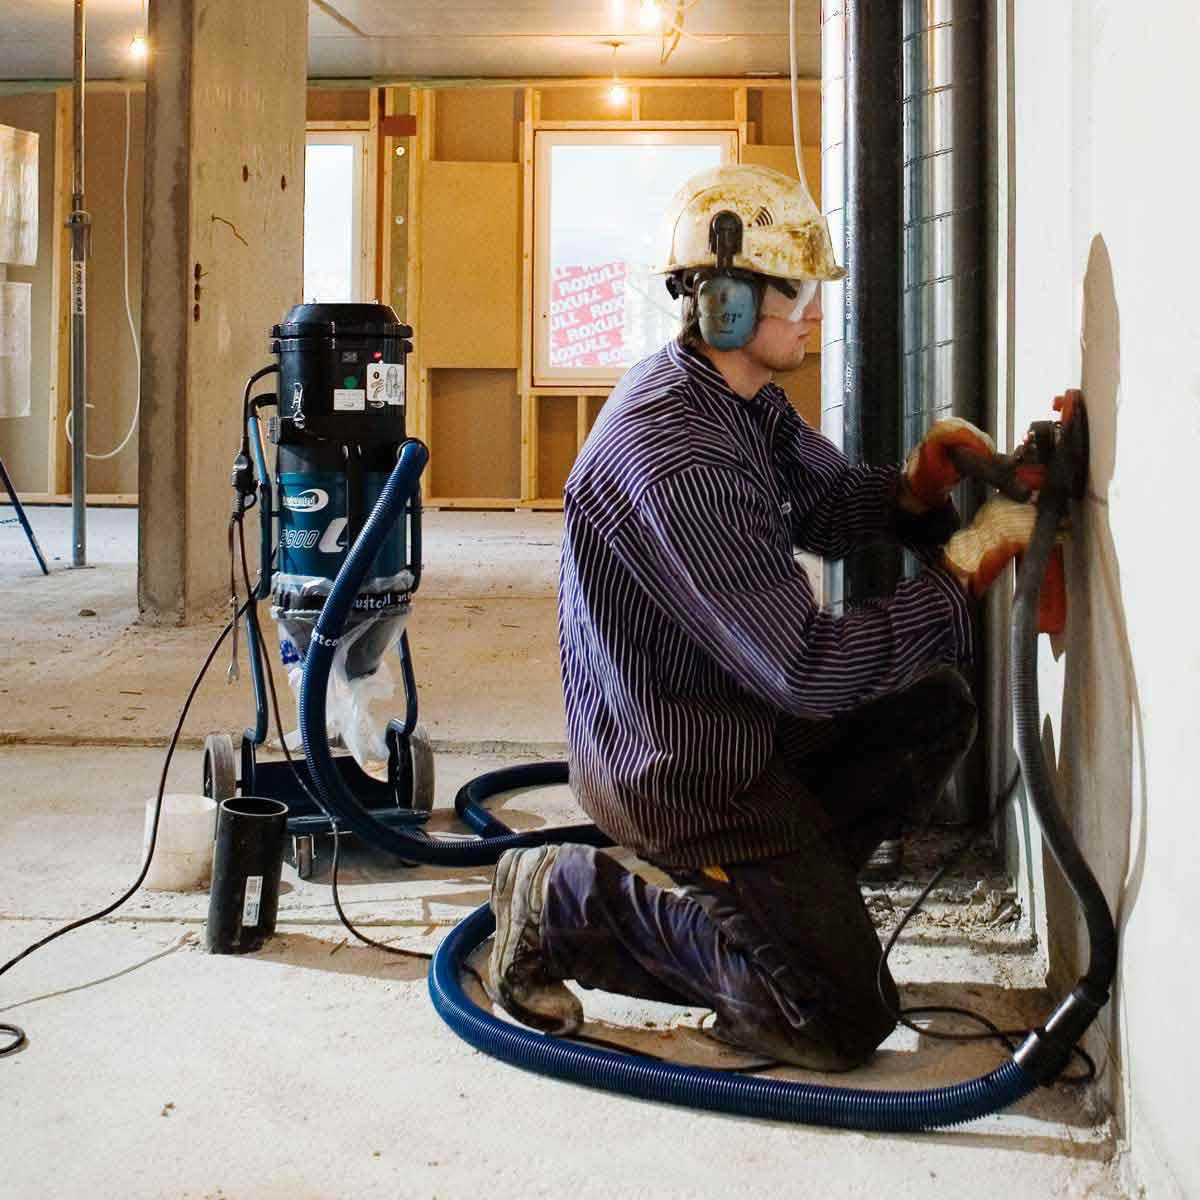 Grinding Concrete with DC2900c Dust Extractor